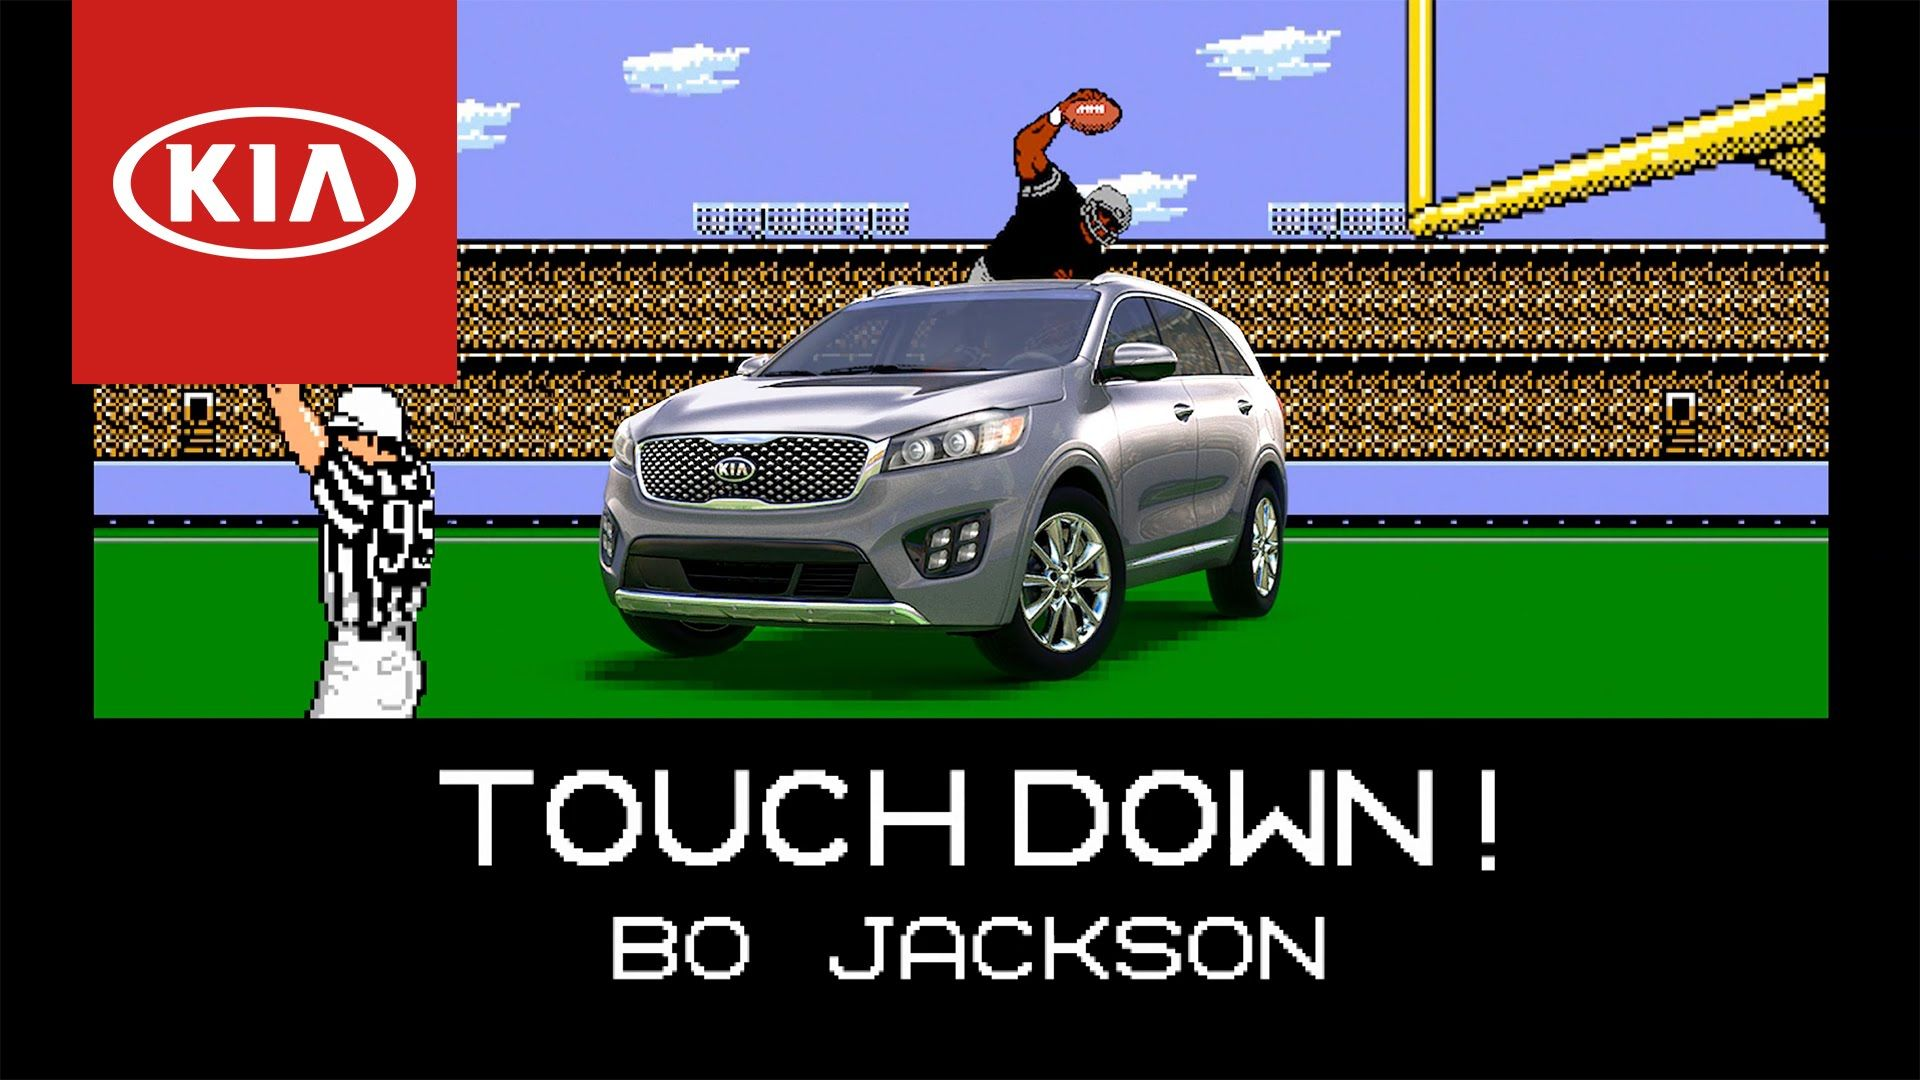 Tecmo Bo Jackson Scores His Longest Most Unstoppable Touchdown Run Yet Thanks Kia Bo Jackson Kia Sorento